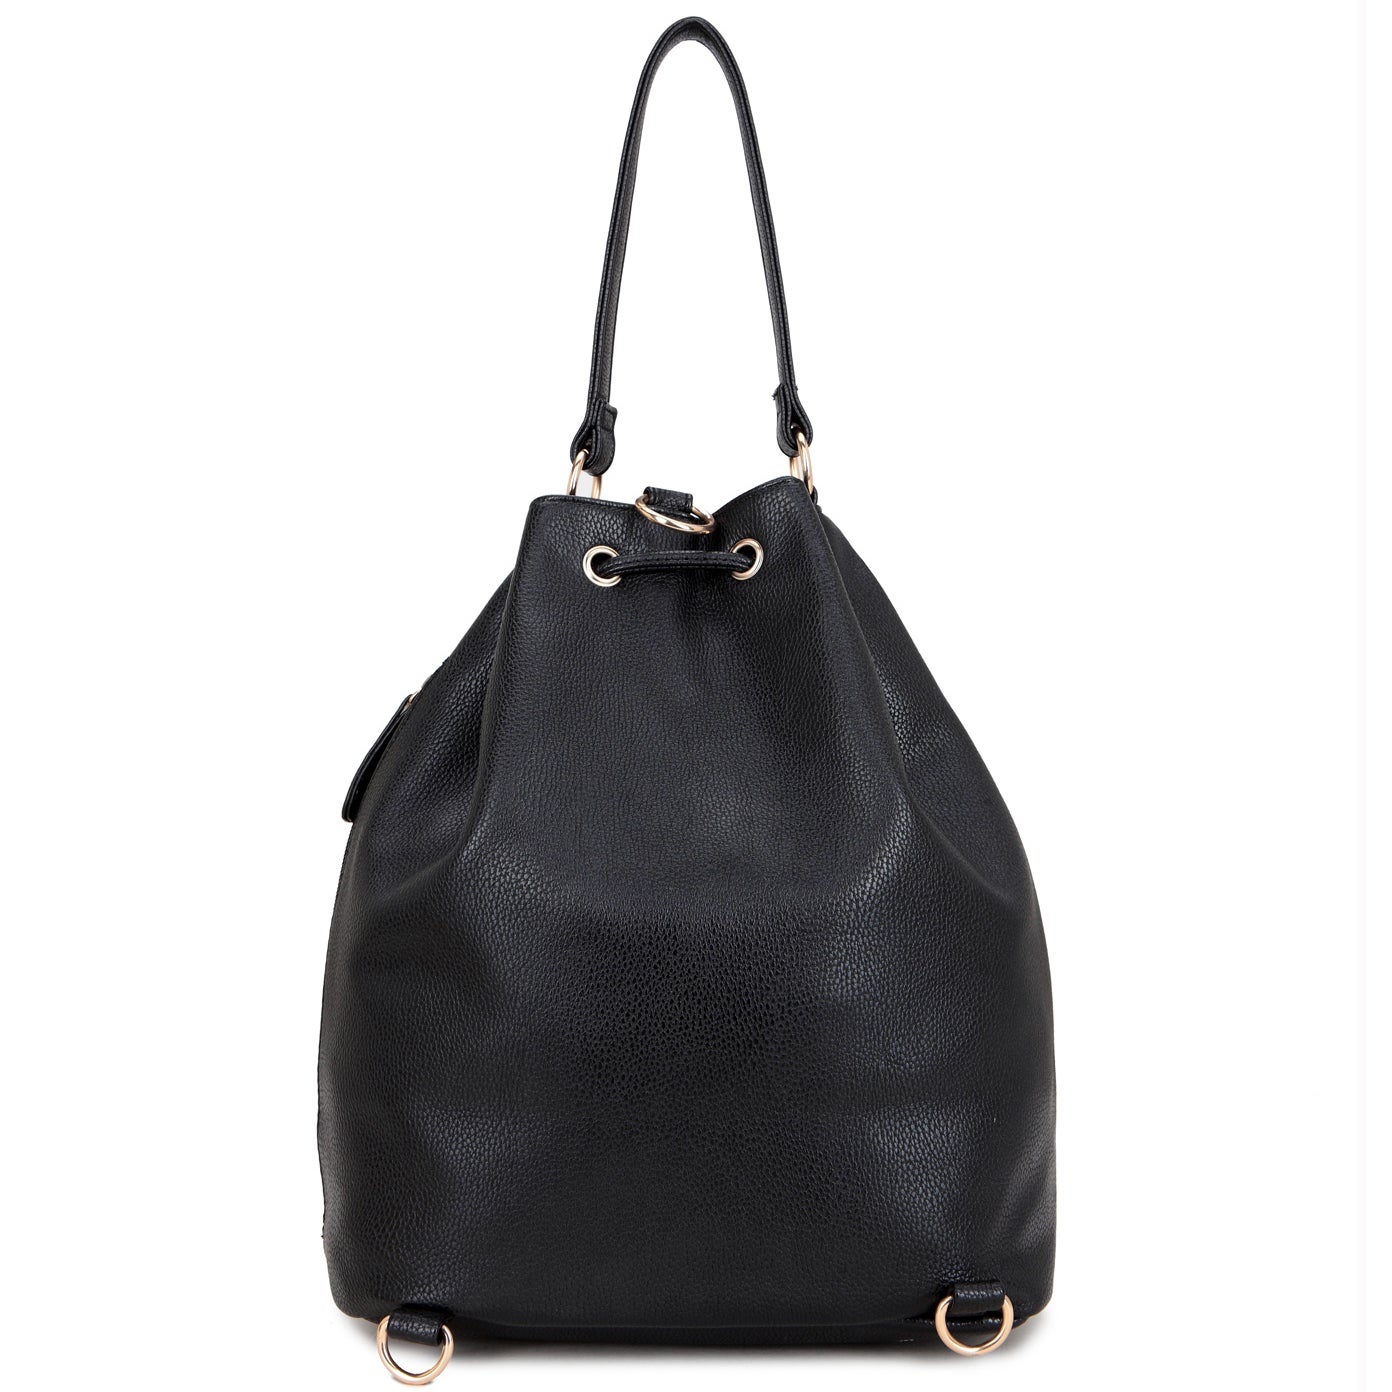 1513b1a705bd Shop Dasein Front Pocket Convertible Drawstring Hobo Handbag - On Sale -  Free Shipping Today - Overstock - 11017875